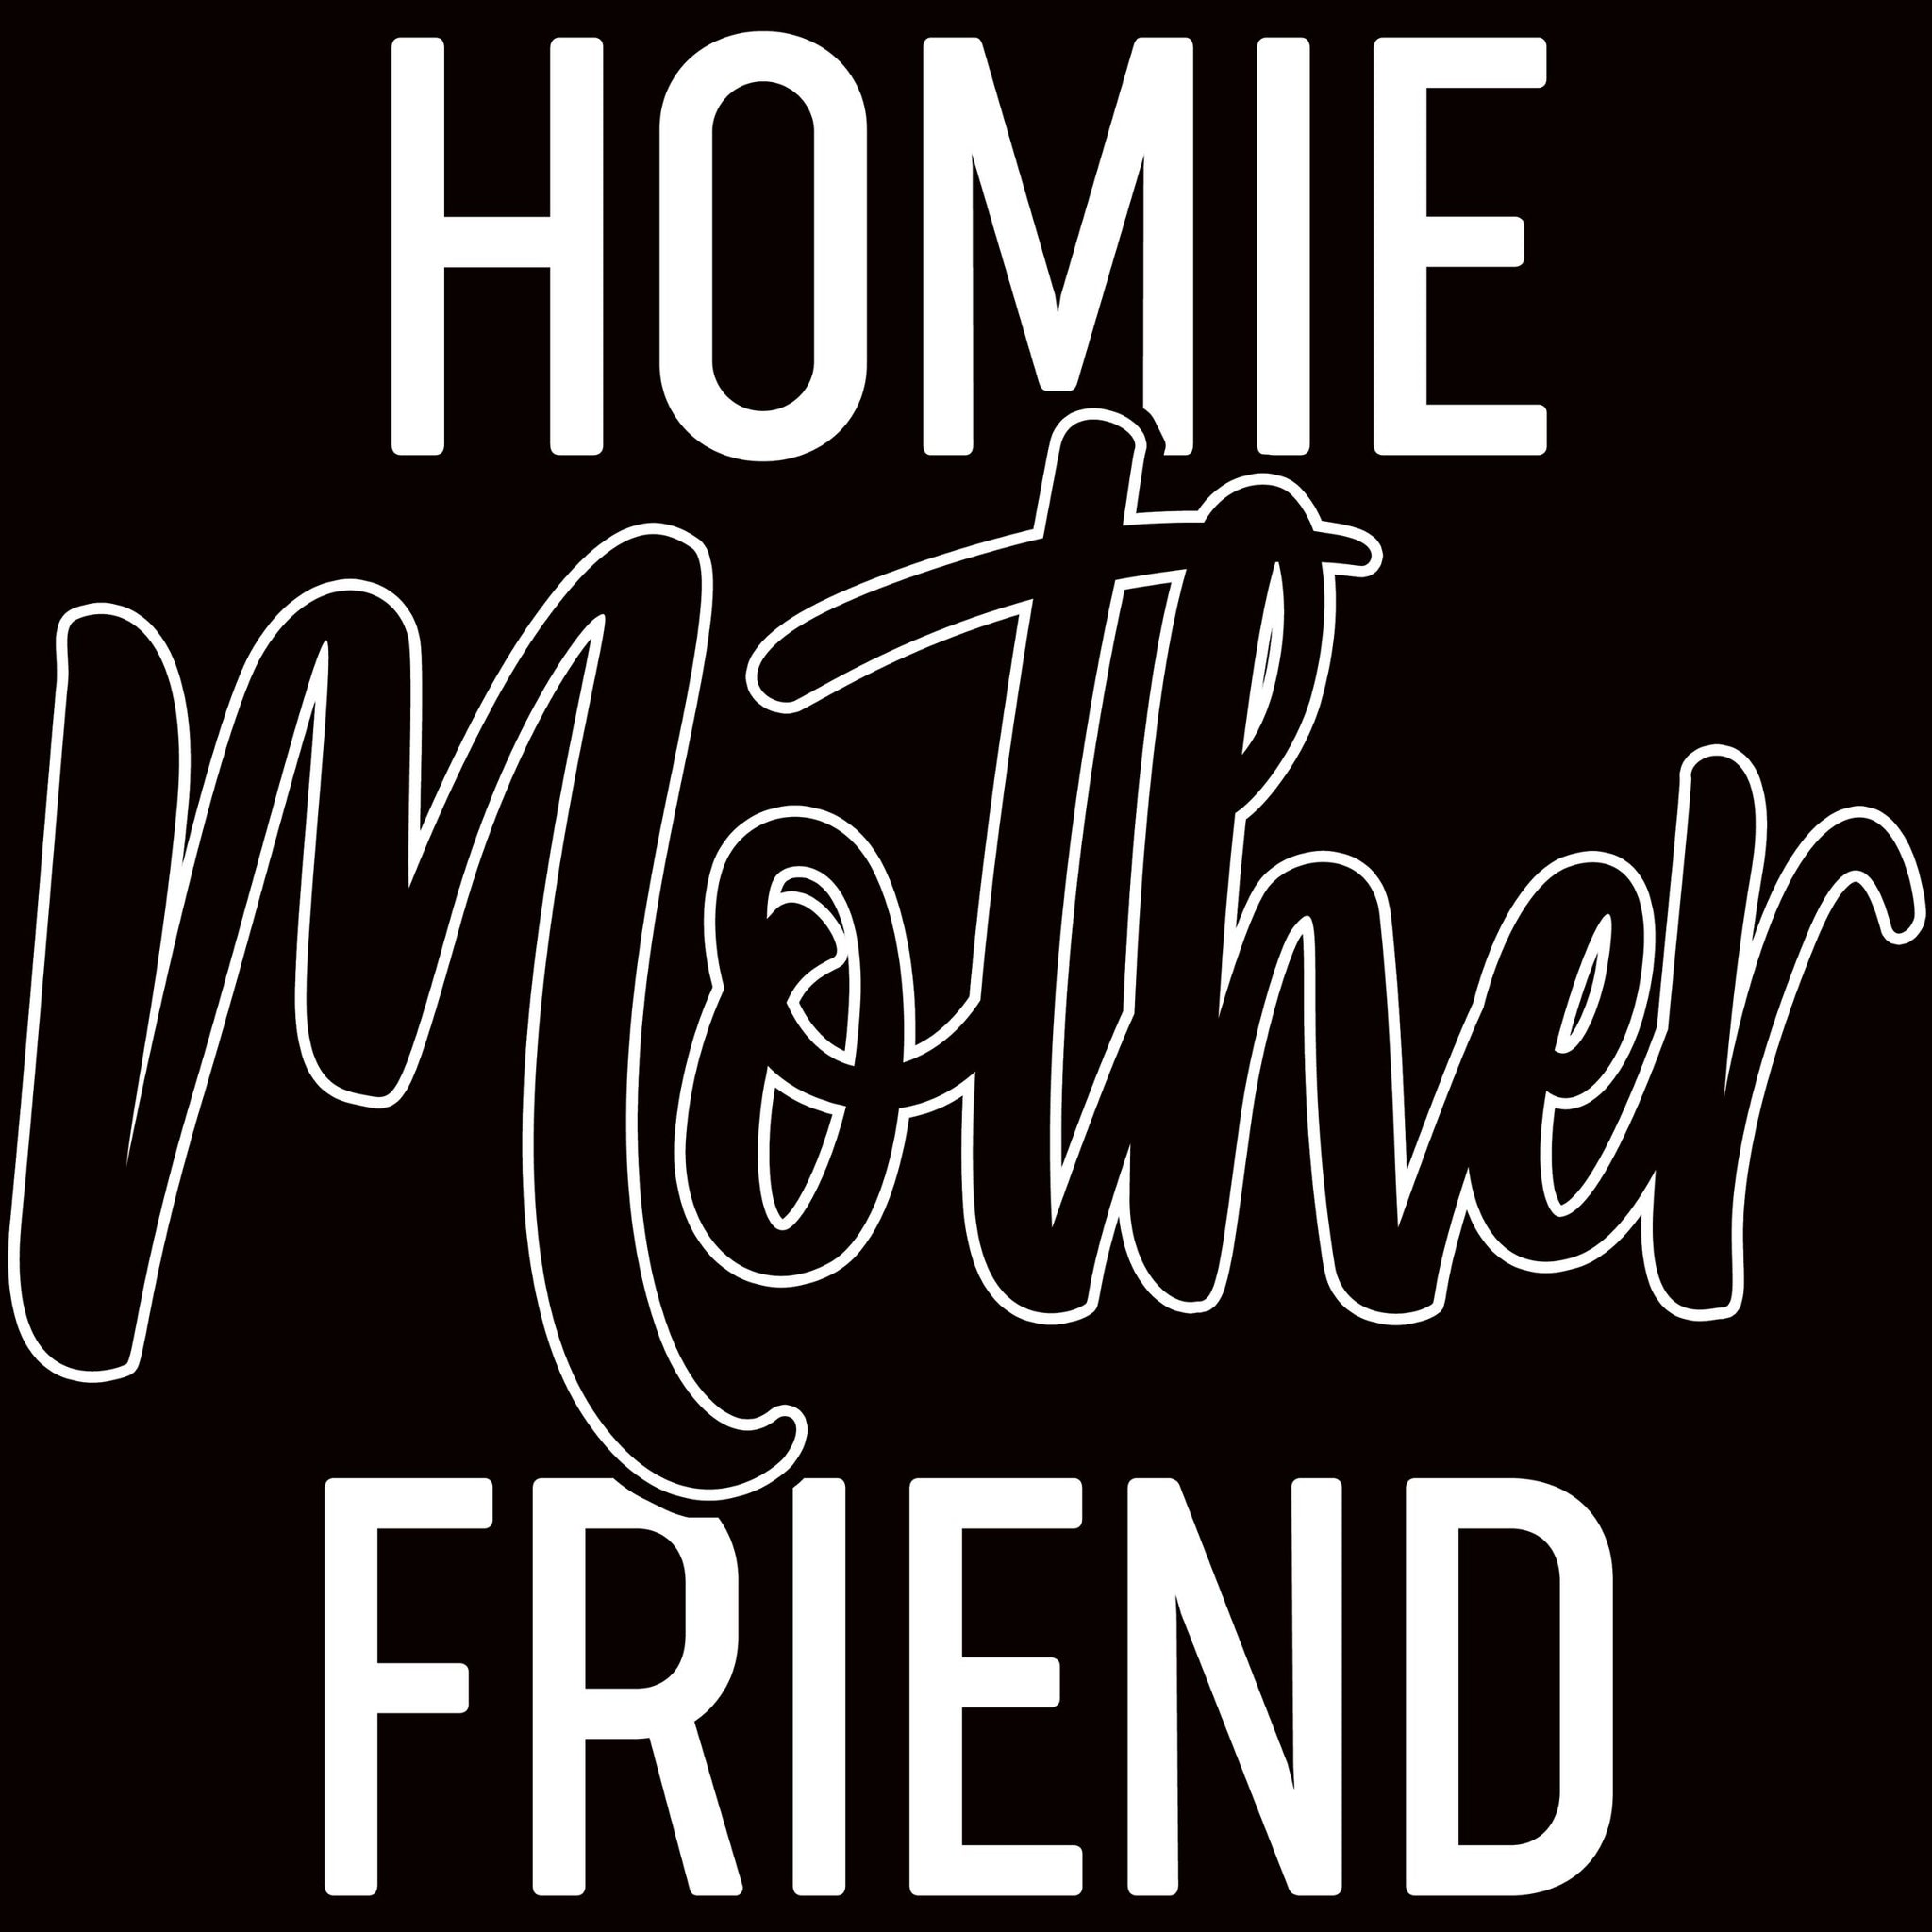 Home Mother Friend - Bastard Graphics